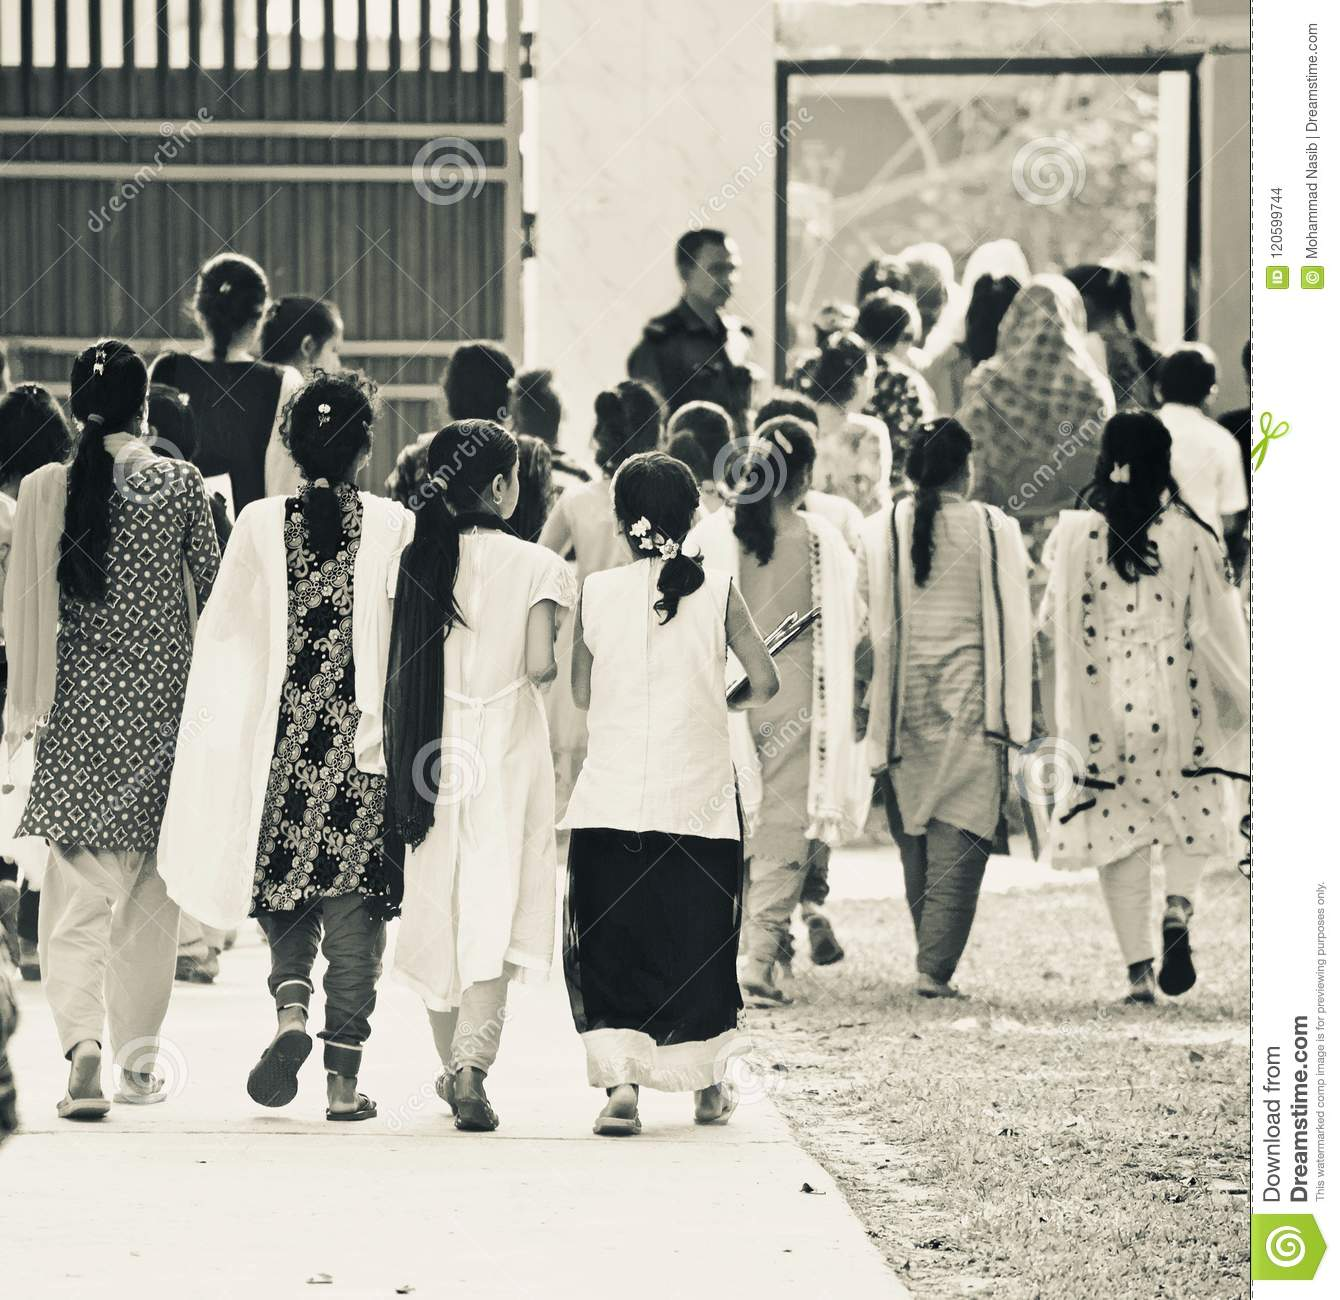 Download Young Children Of Bangladesh Walking Together Finishing The Final Examination Unique Editorial Photo Editorial Stock Image - Image of finishing, bangladeshi: 120599744